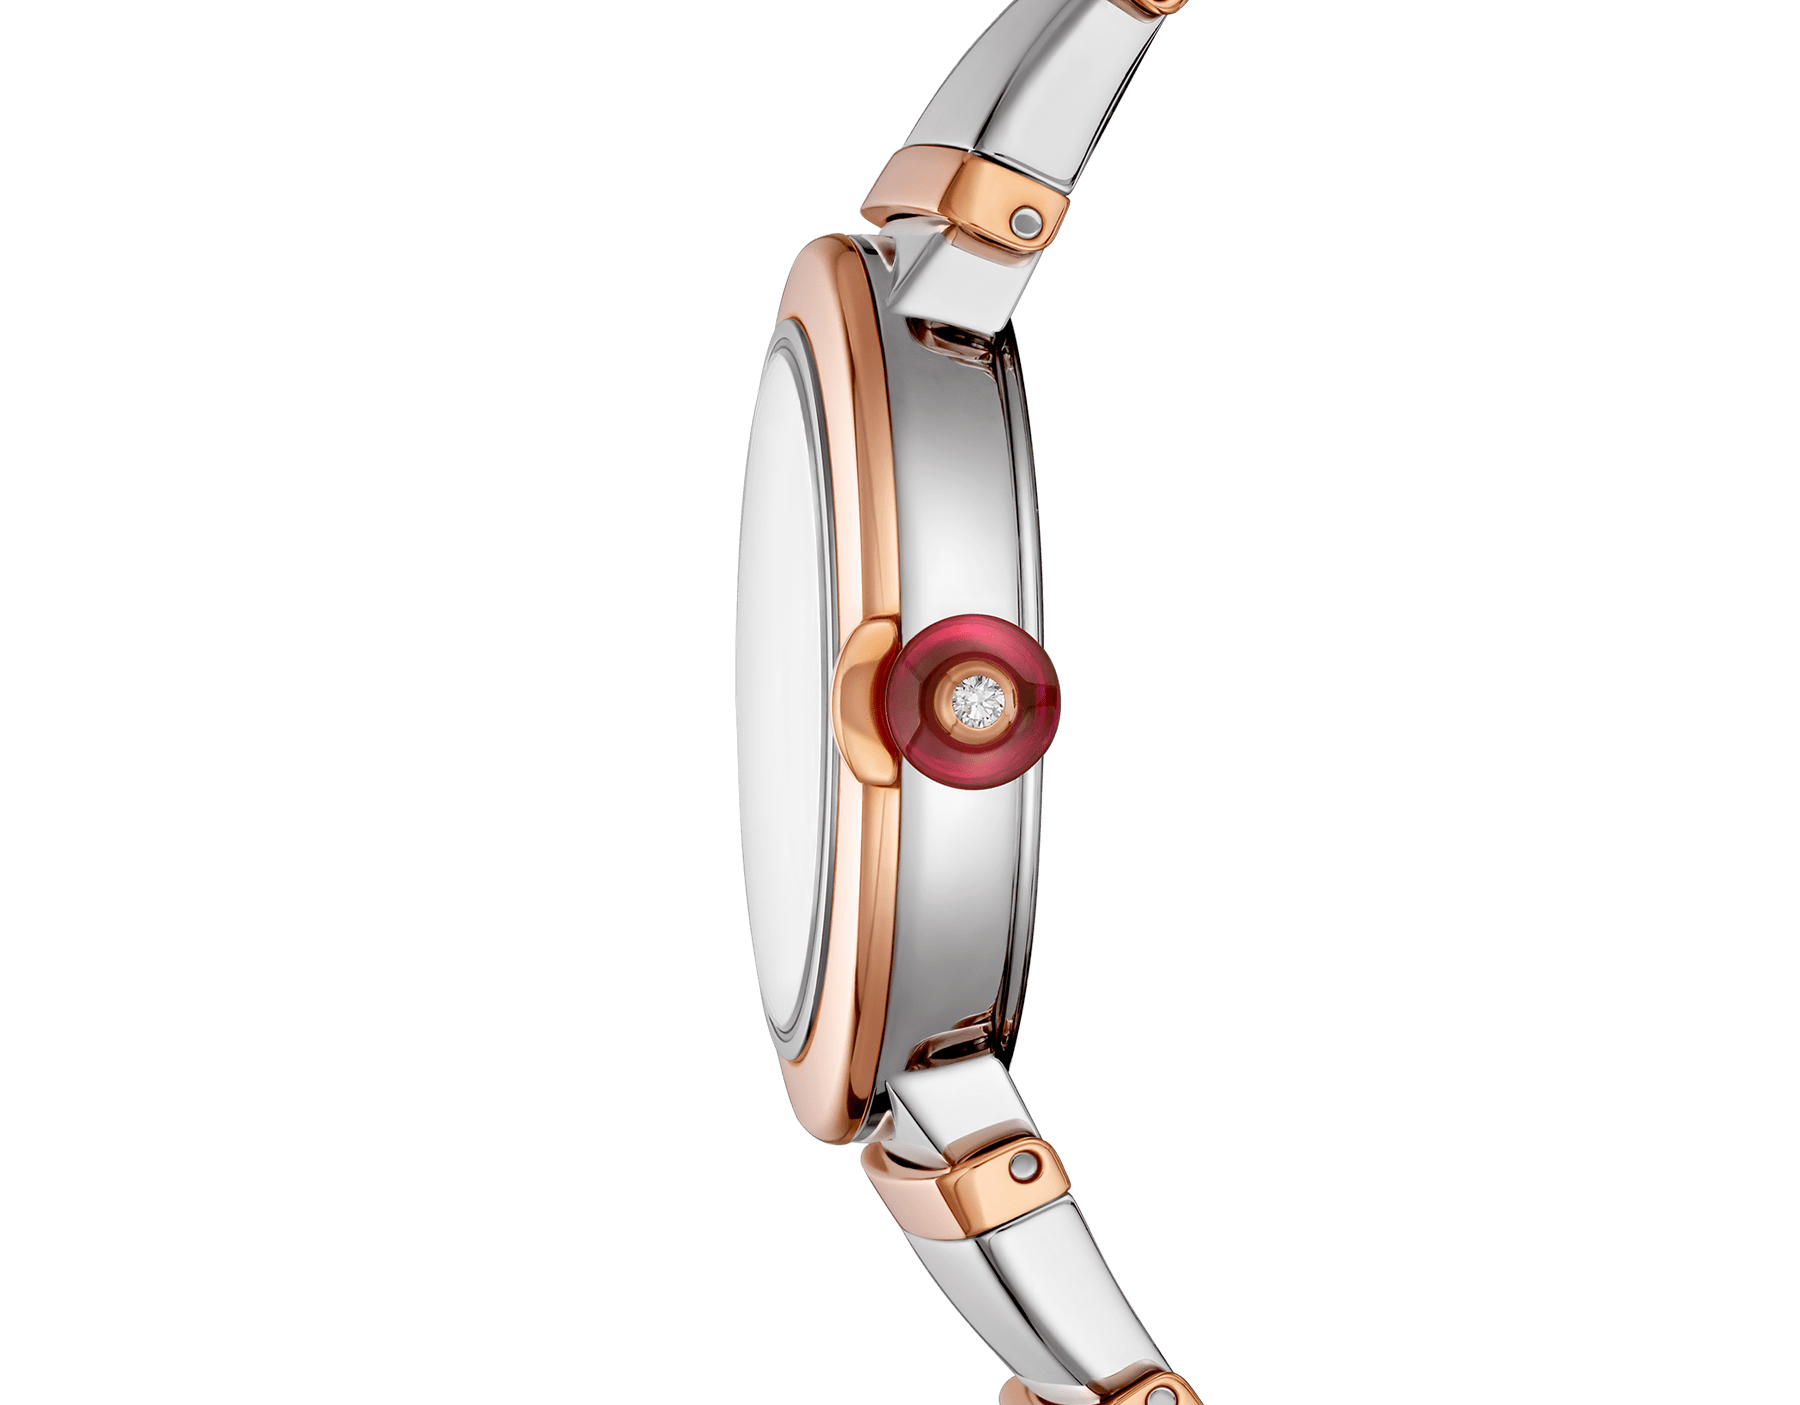 LVCEA watch in 18 kt rose gold and stainless steel case and bracelet, white mother-of-pearl dial and diamond indexes. 102194 image 3